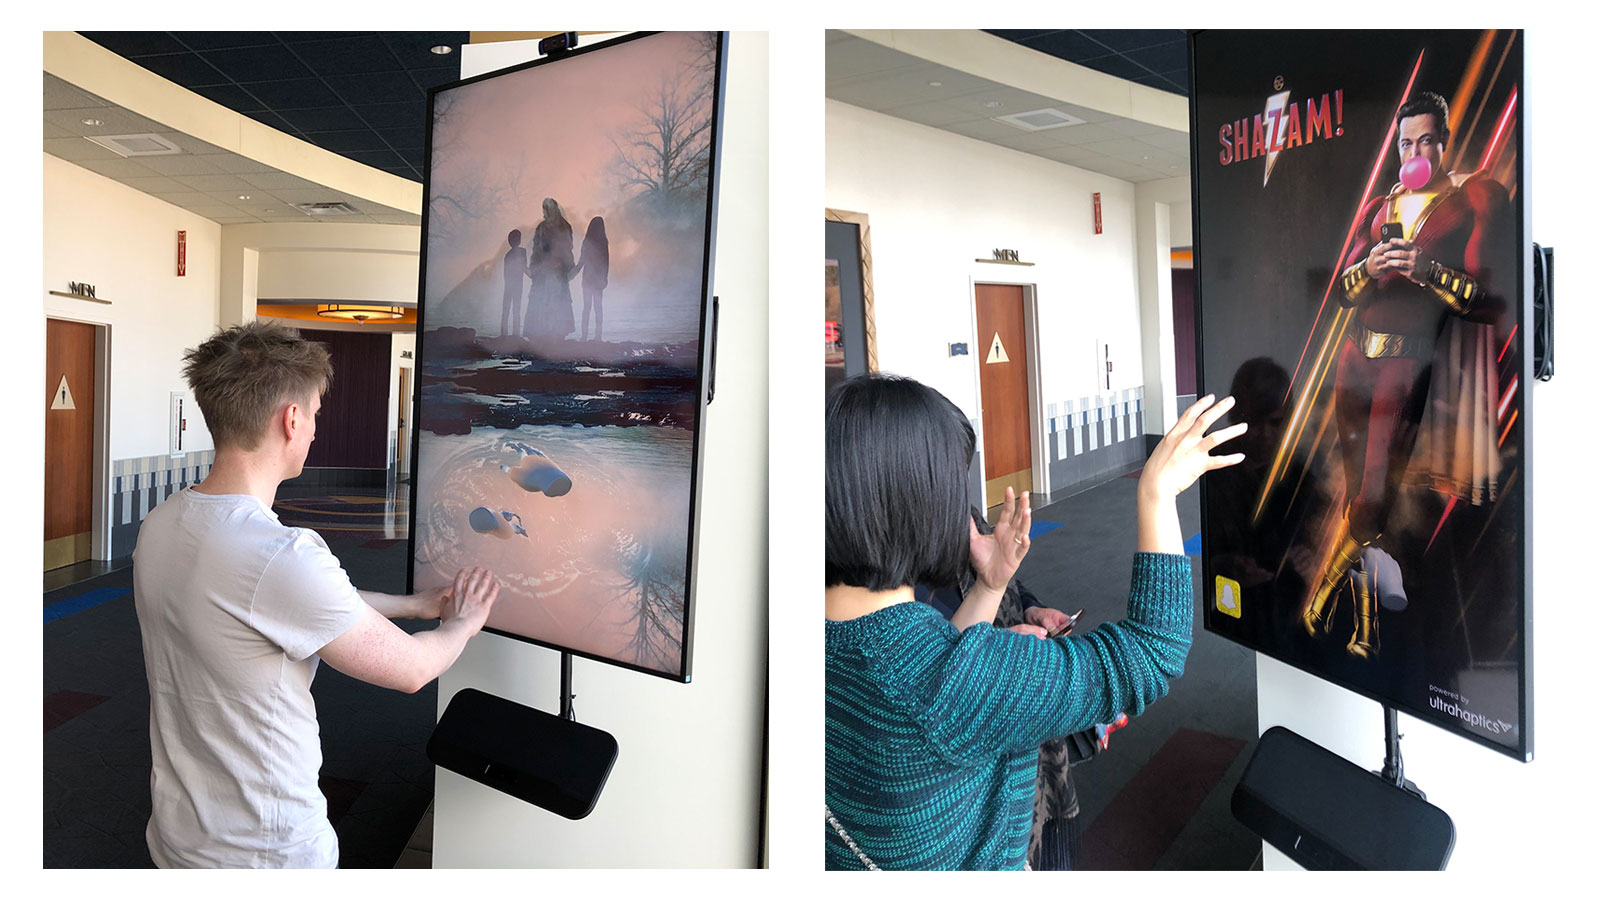 Ultraleap interactive digital posters for La Larona and Shazam with haptics and tracking